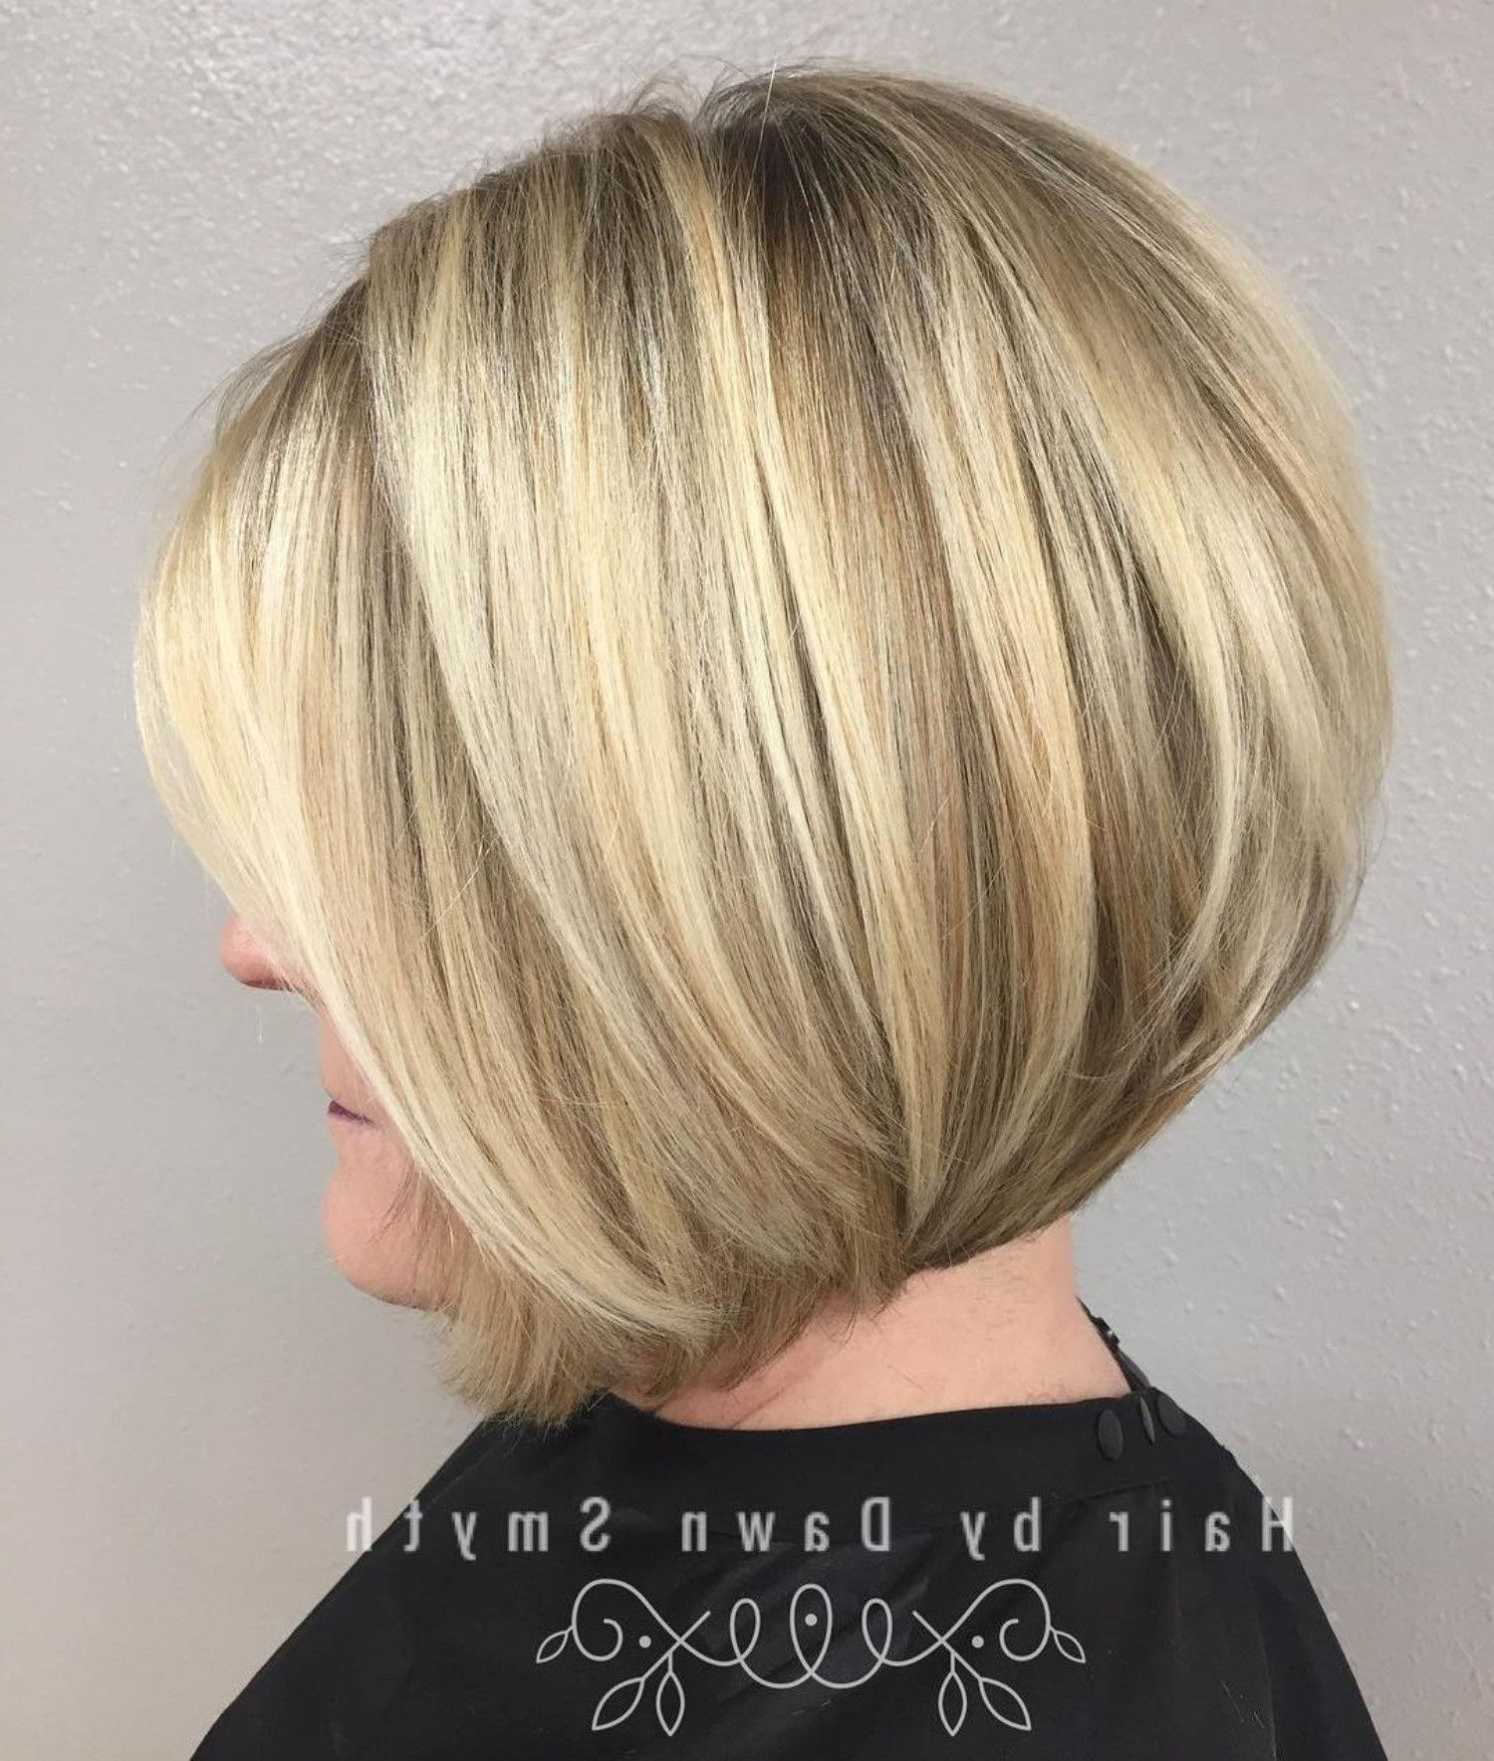 90 Classy And Simple Short Hairstyles For Women Over 50 | Haircut In Most Popular Pastel And Ash Pixie Haircuts With Fused Layers (View 8 of 15)